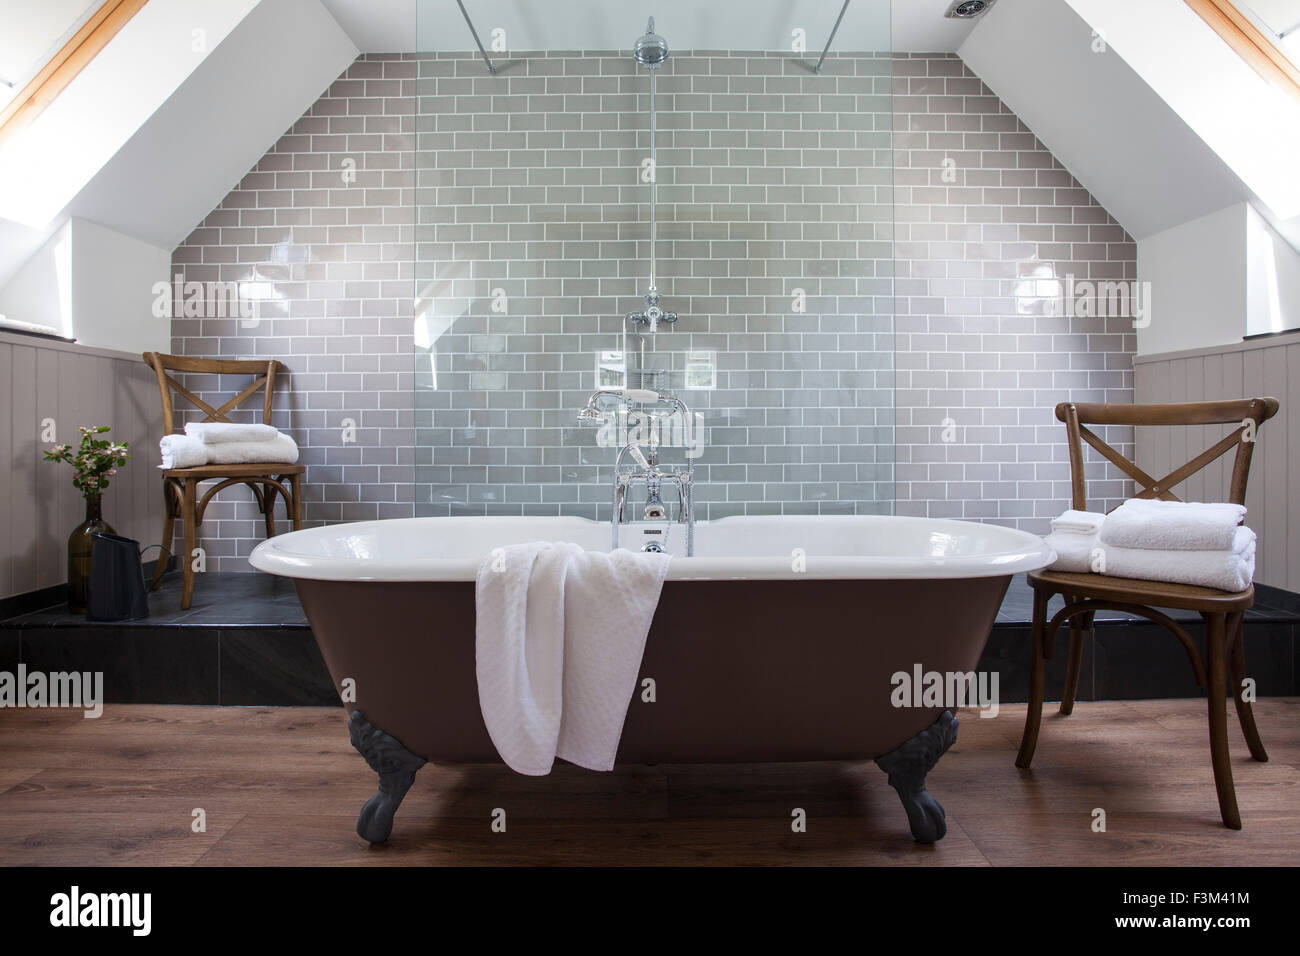 Roll top bath with ball and claw feet in luxury bathroom - Stock Image